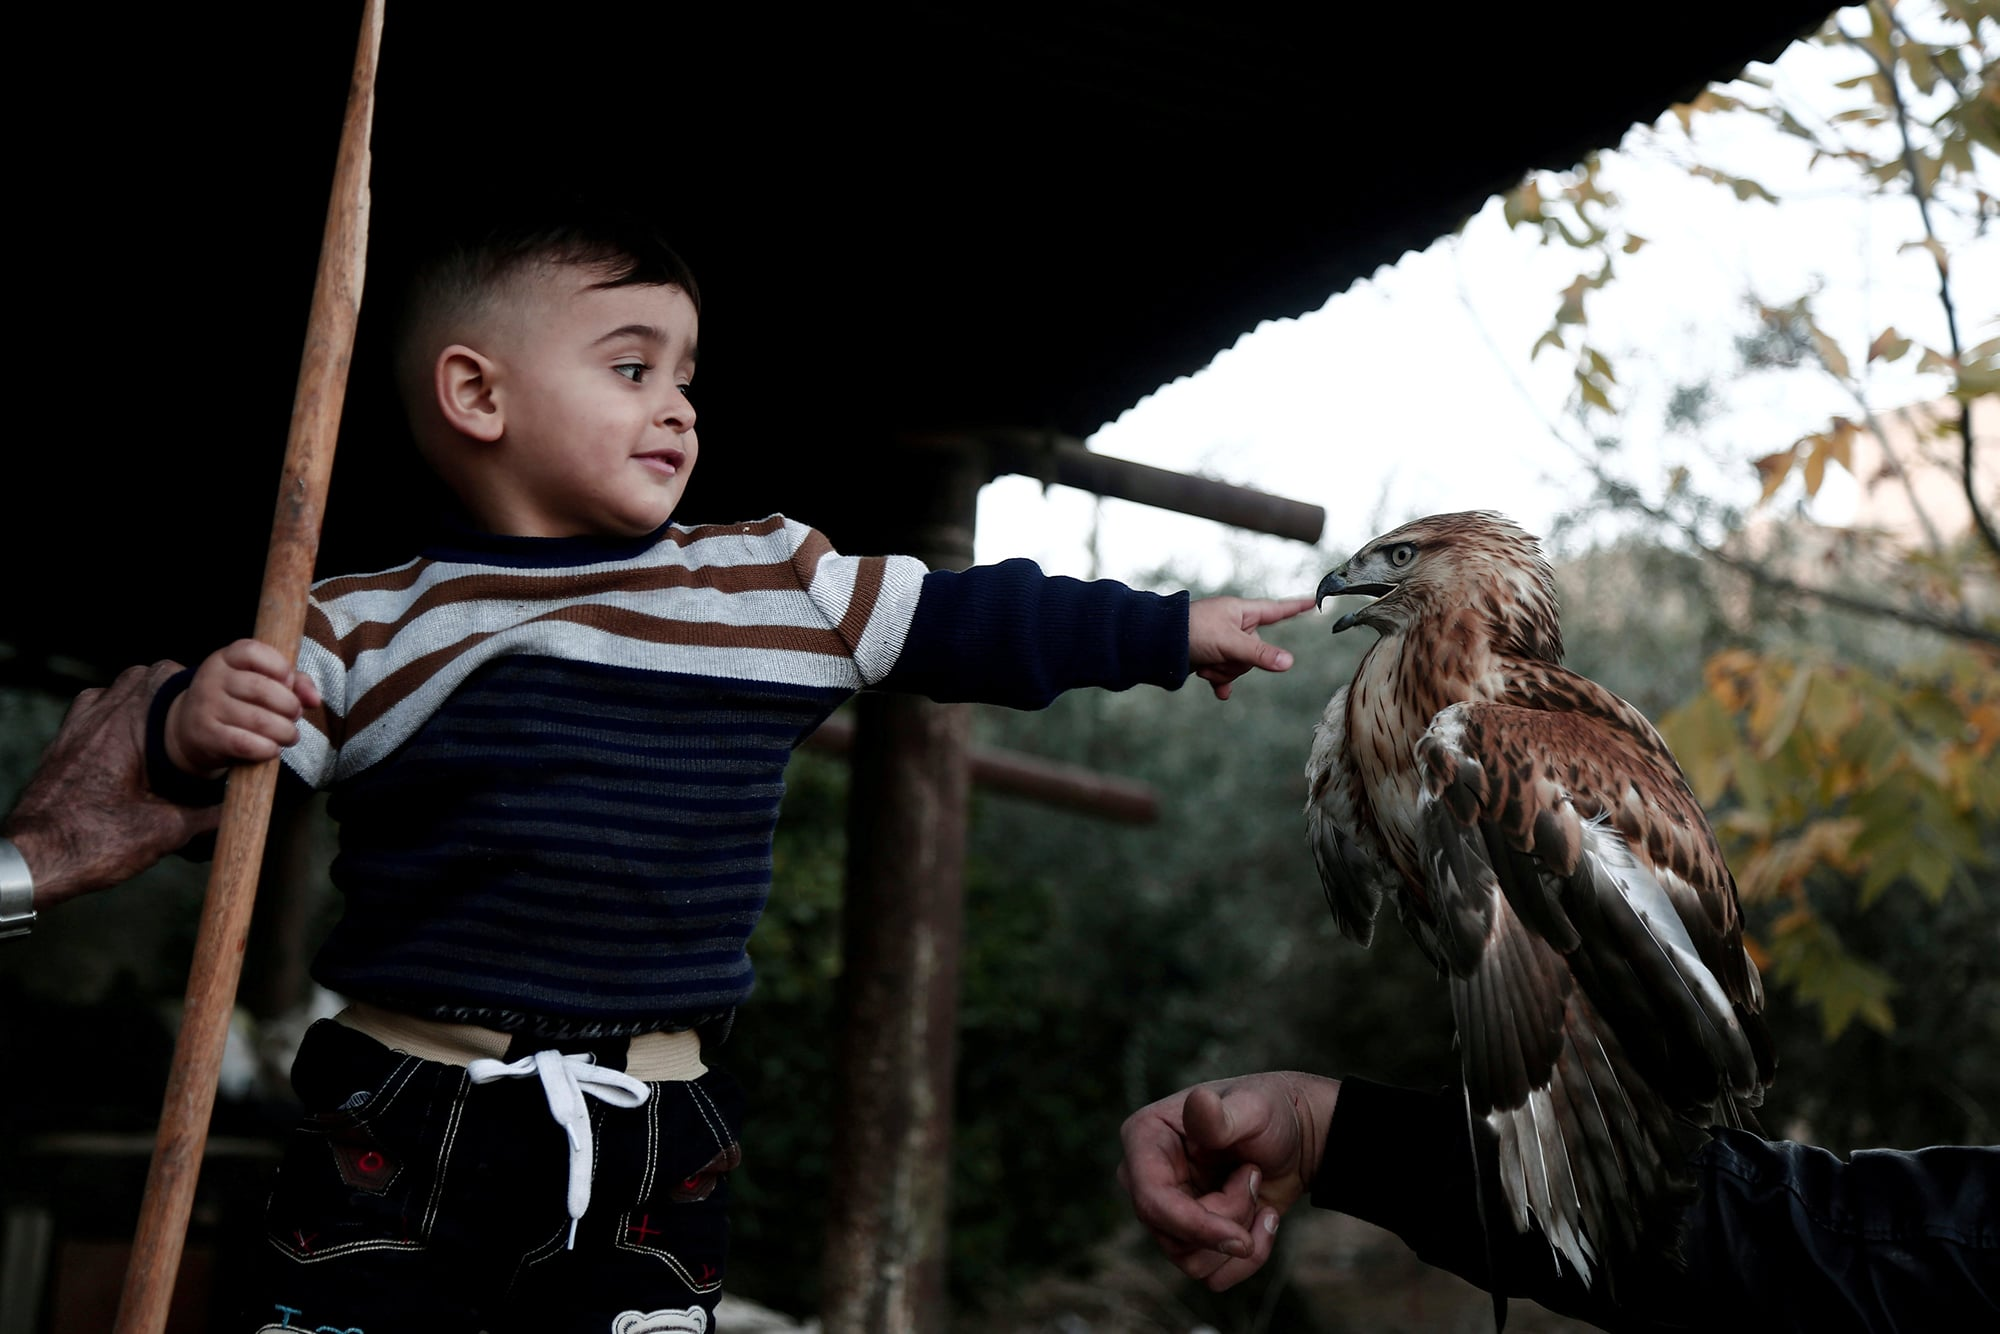 A Palestinian boy plays with a falcon in the West Bank town of Tubas December 3, 2017. Picture taken December 3, 2017. REUTER